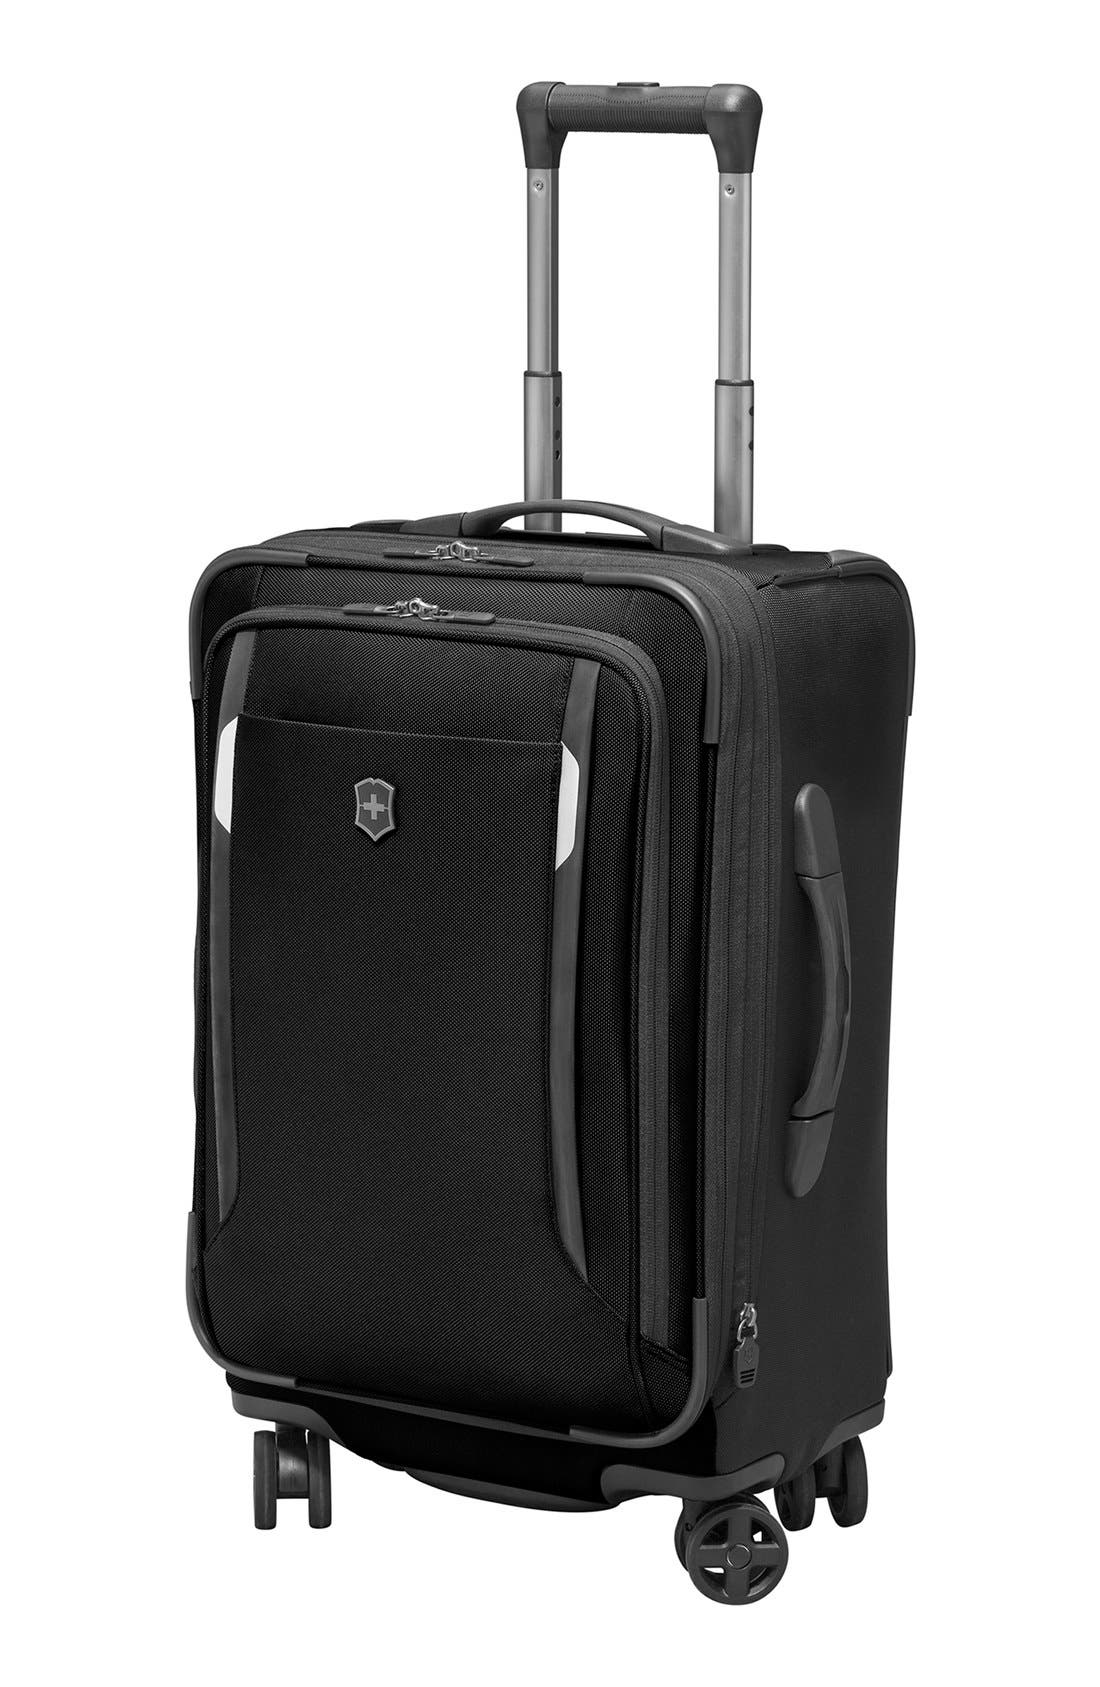 WT 5.0 Dual Caster Wheeled 22-Inch Carry-On,                             Alternate thumbnail 5, color,                             Black